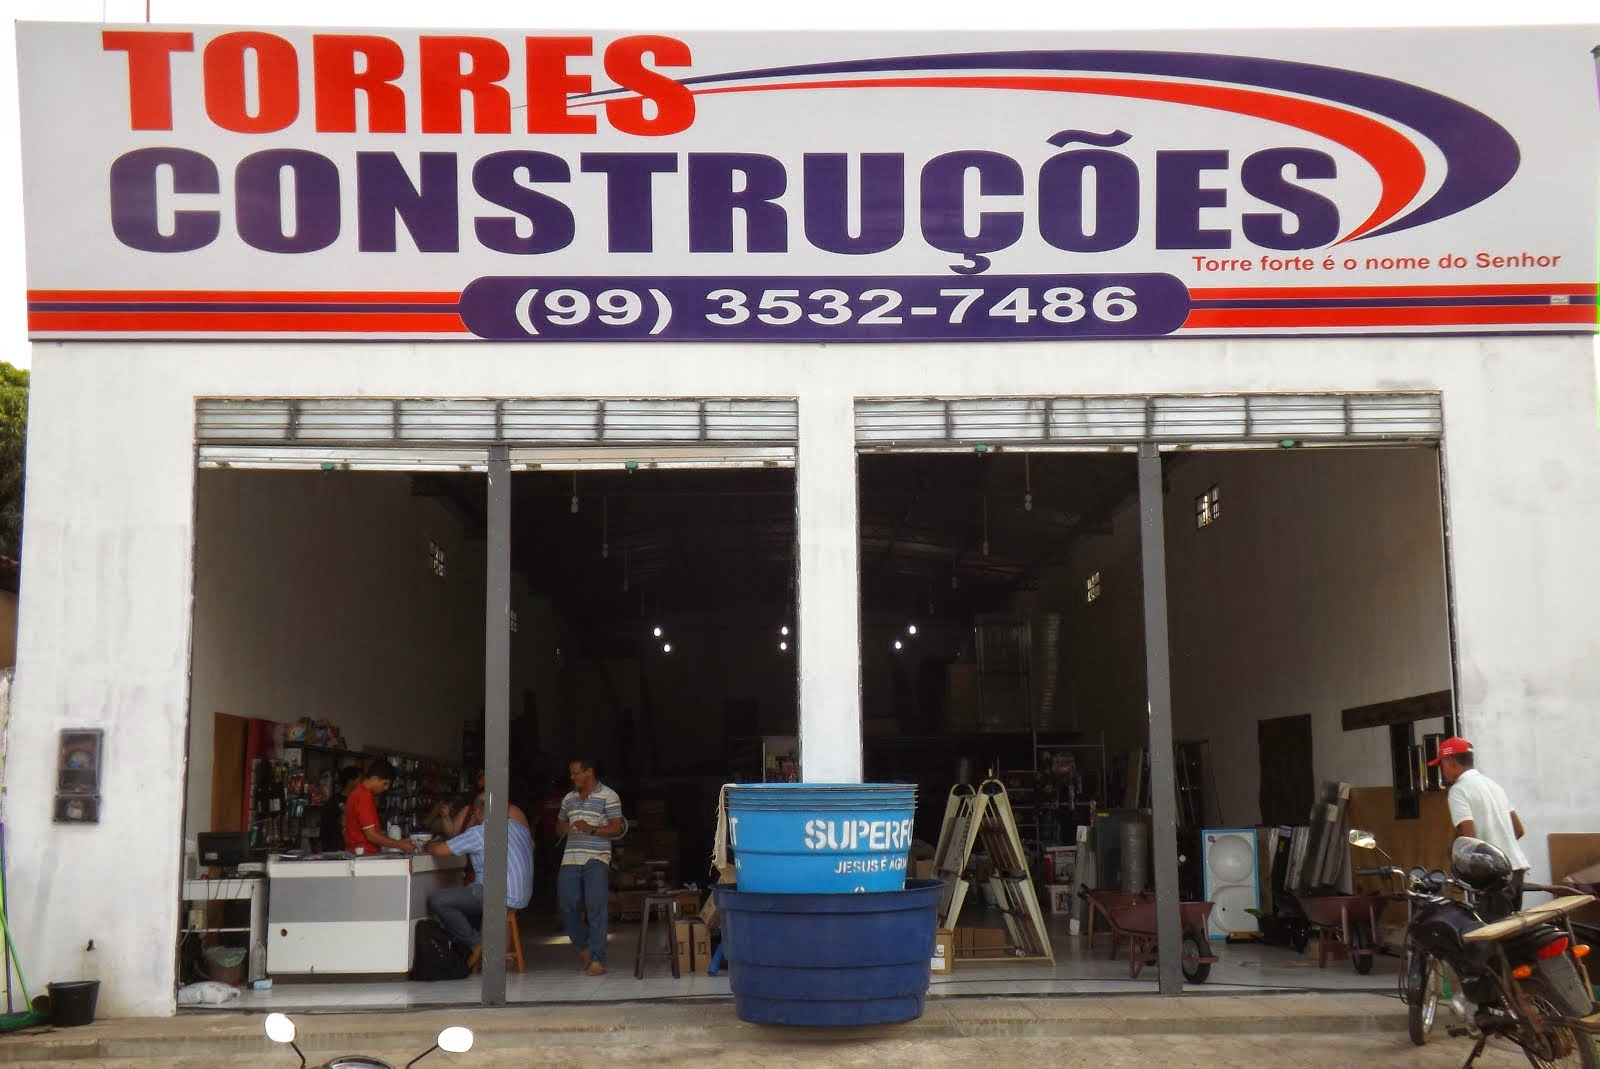 TORRES CONSTRUÇÕES